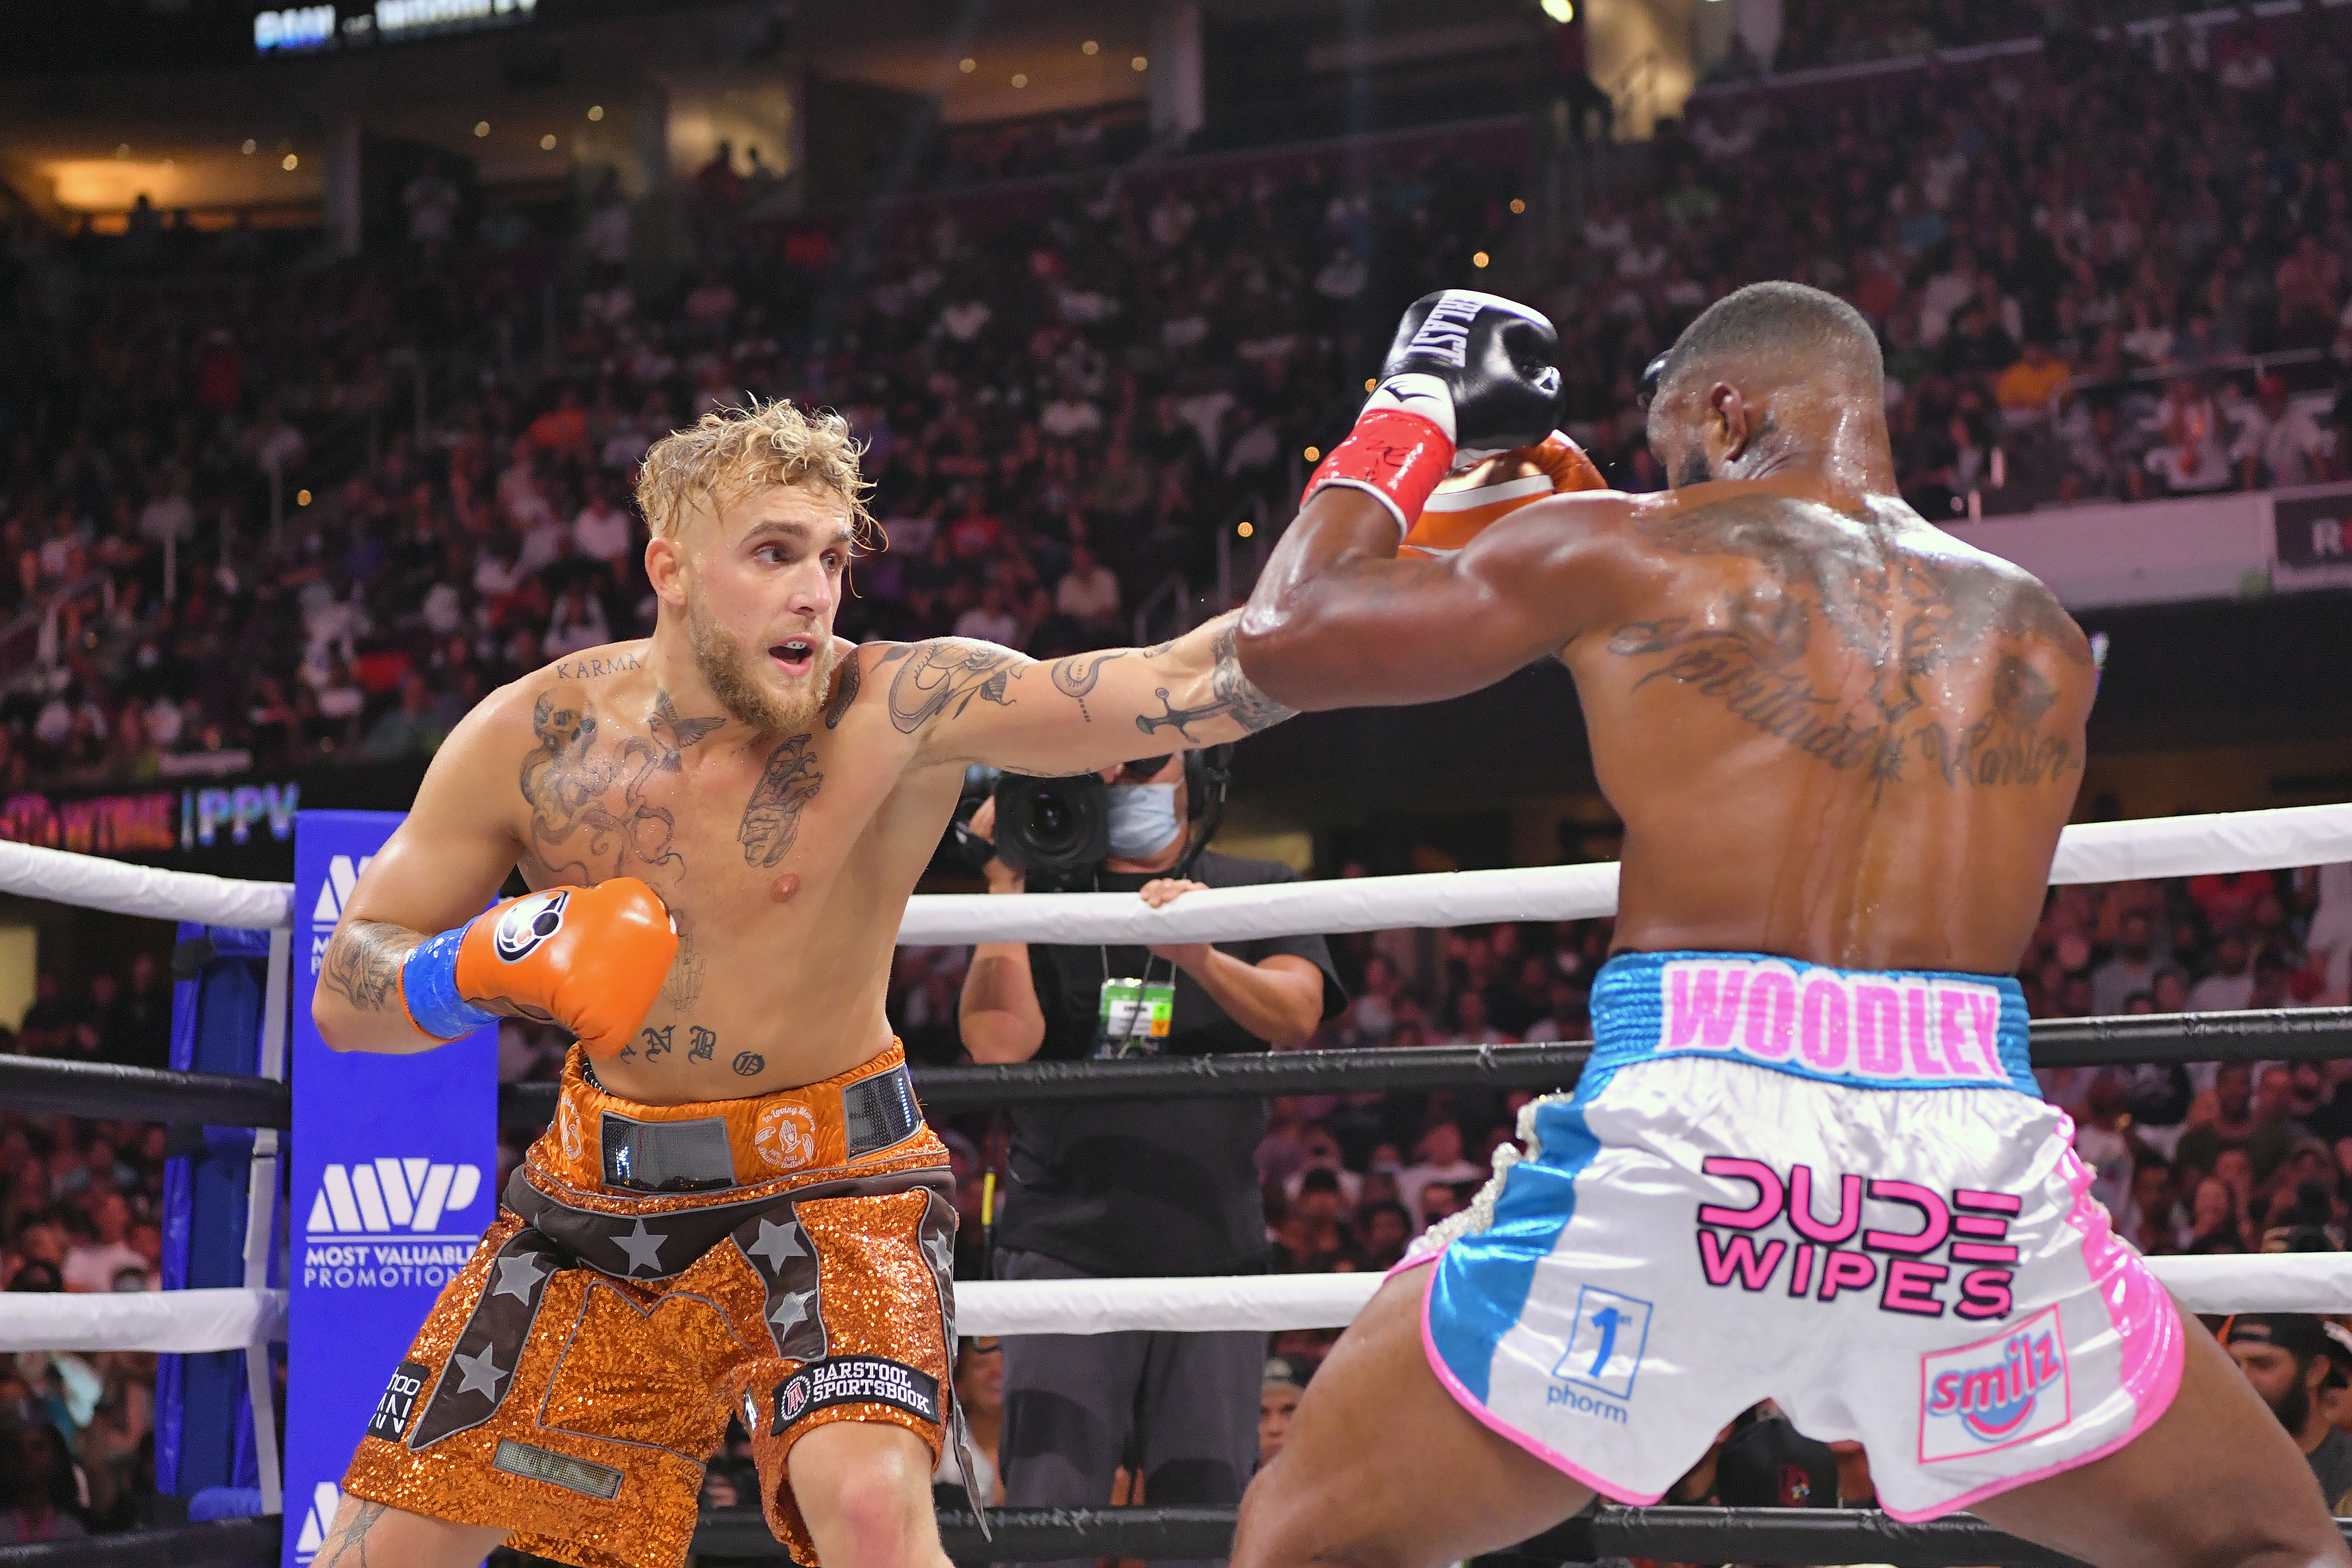 Jake Paul and Tyron Woodley during their boxing match.